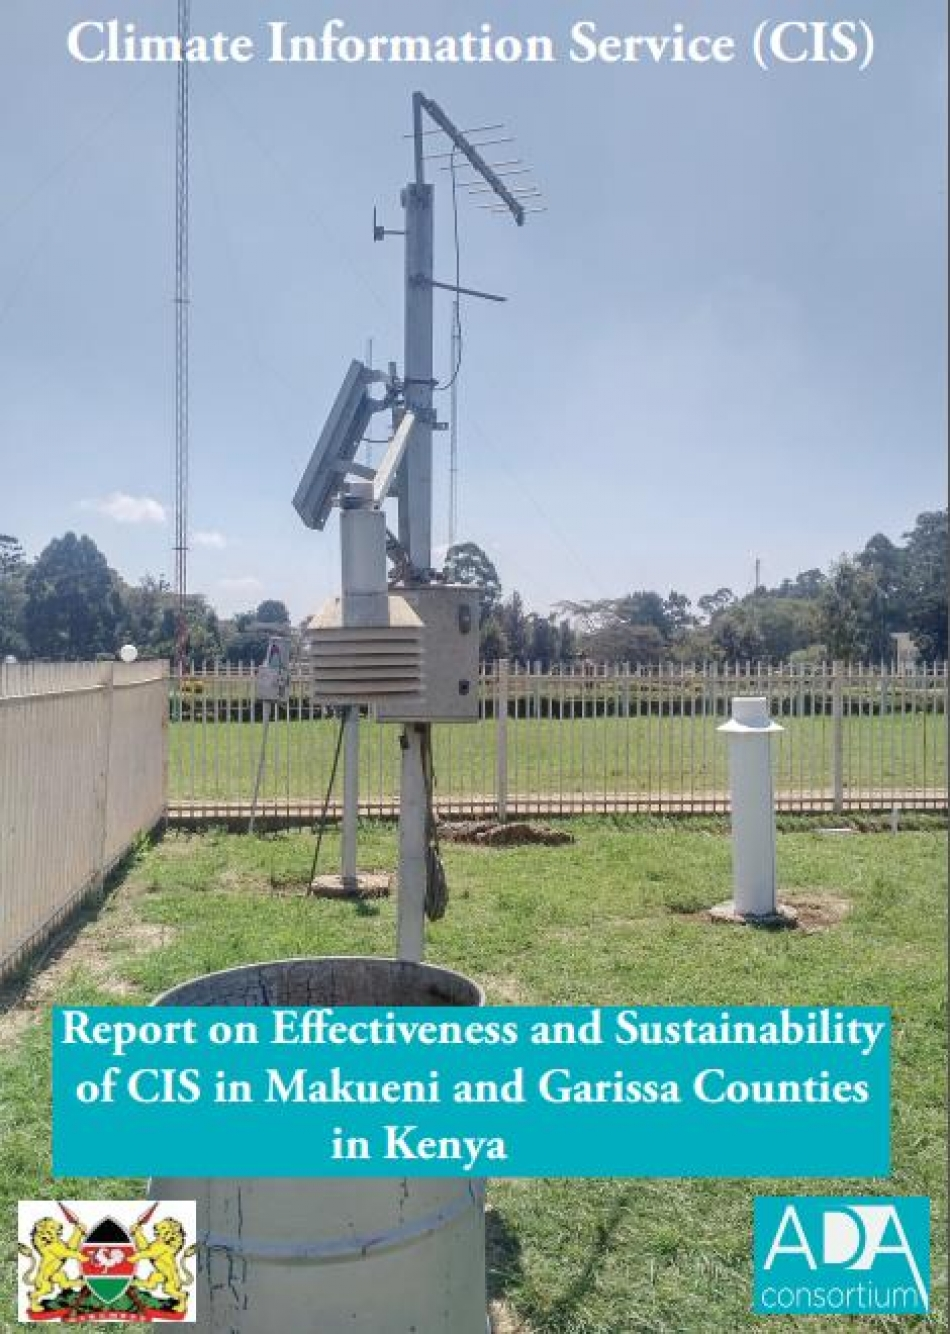 Report on Effectiveness and Sustainability of CIS in Makueni and Garissa Counties in Kenya